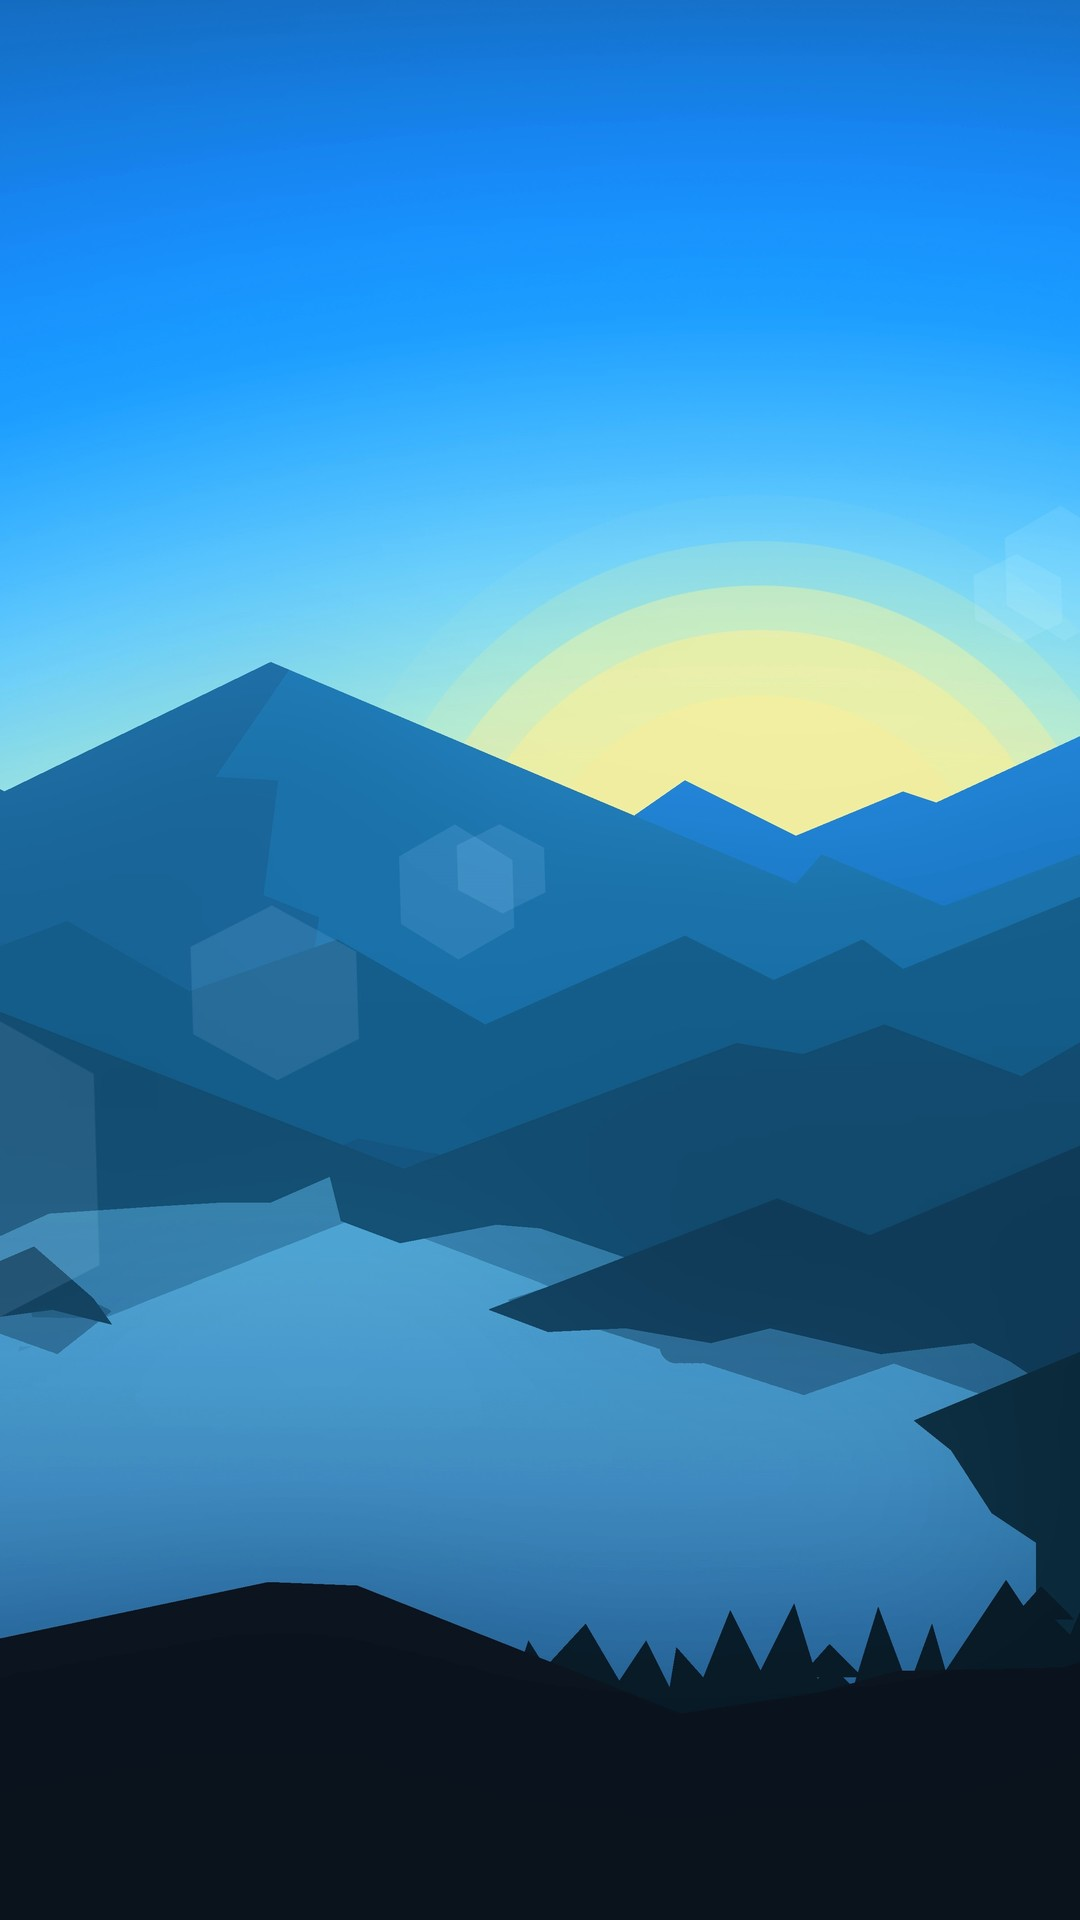 forest mountains sunset cool weather minimalism yn wallpaper